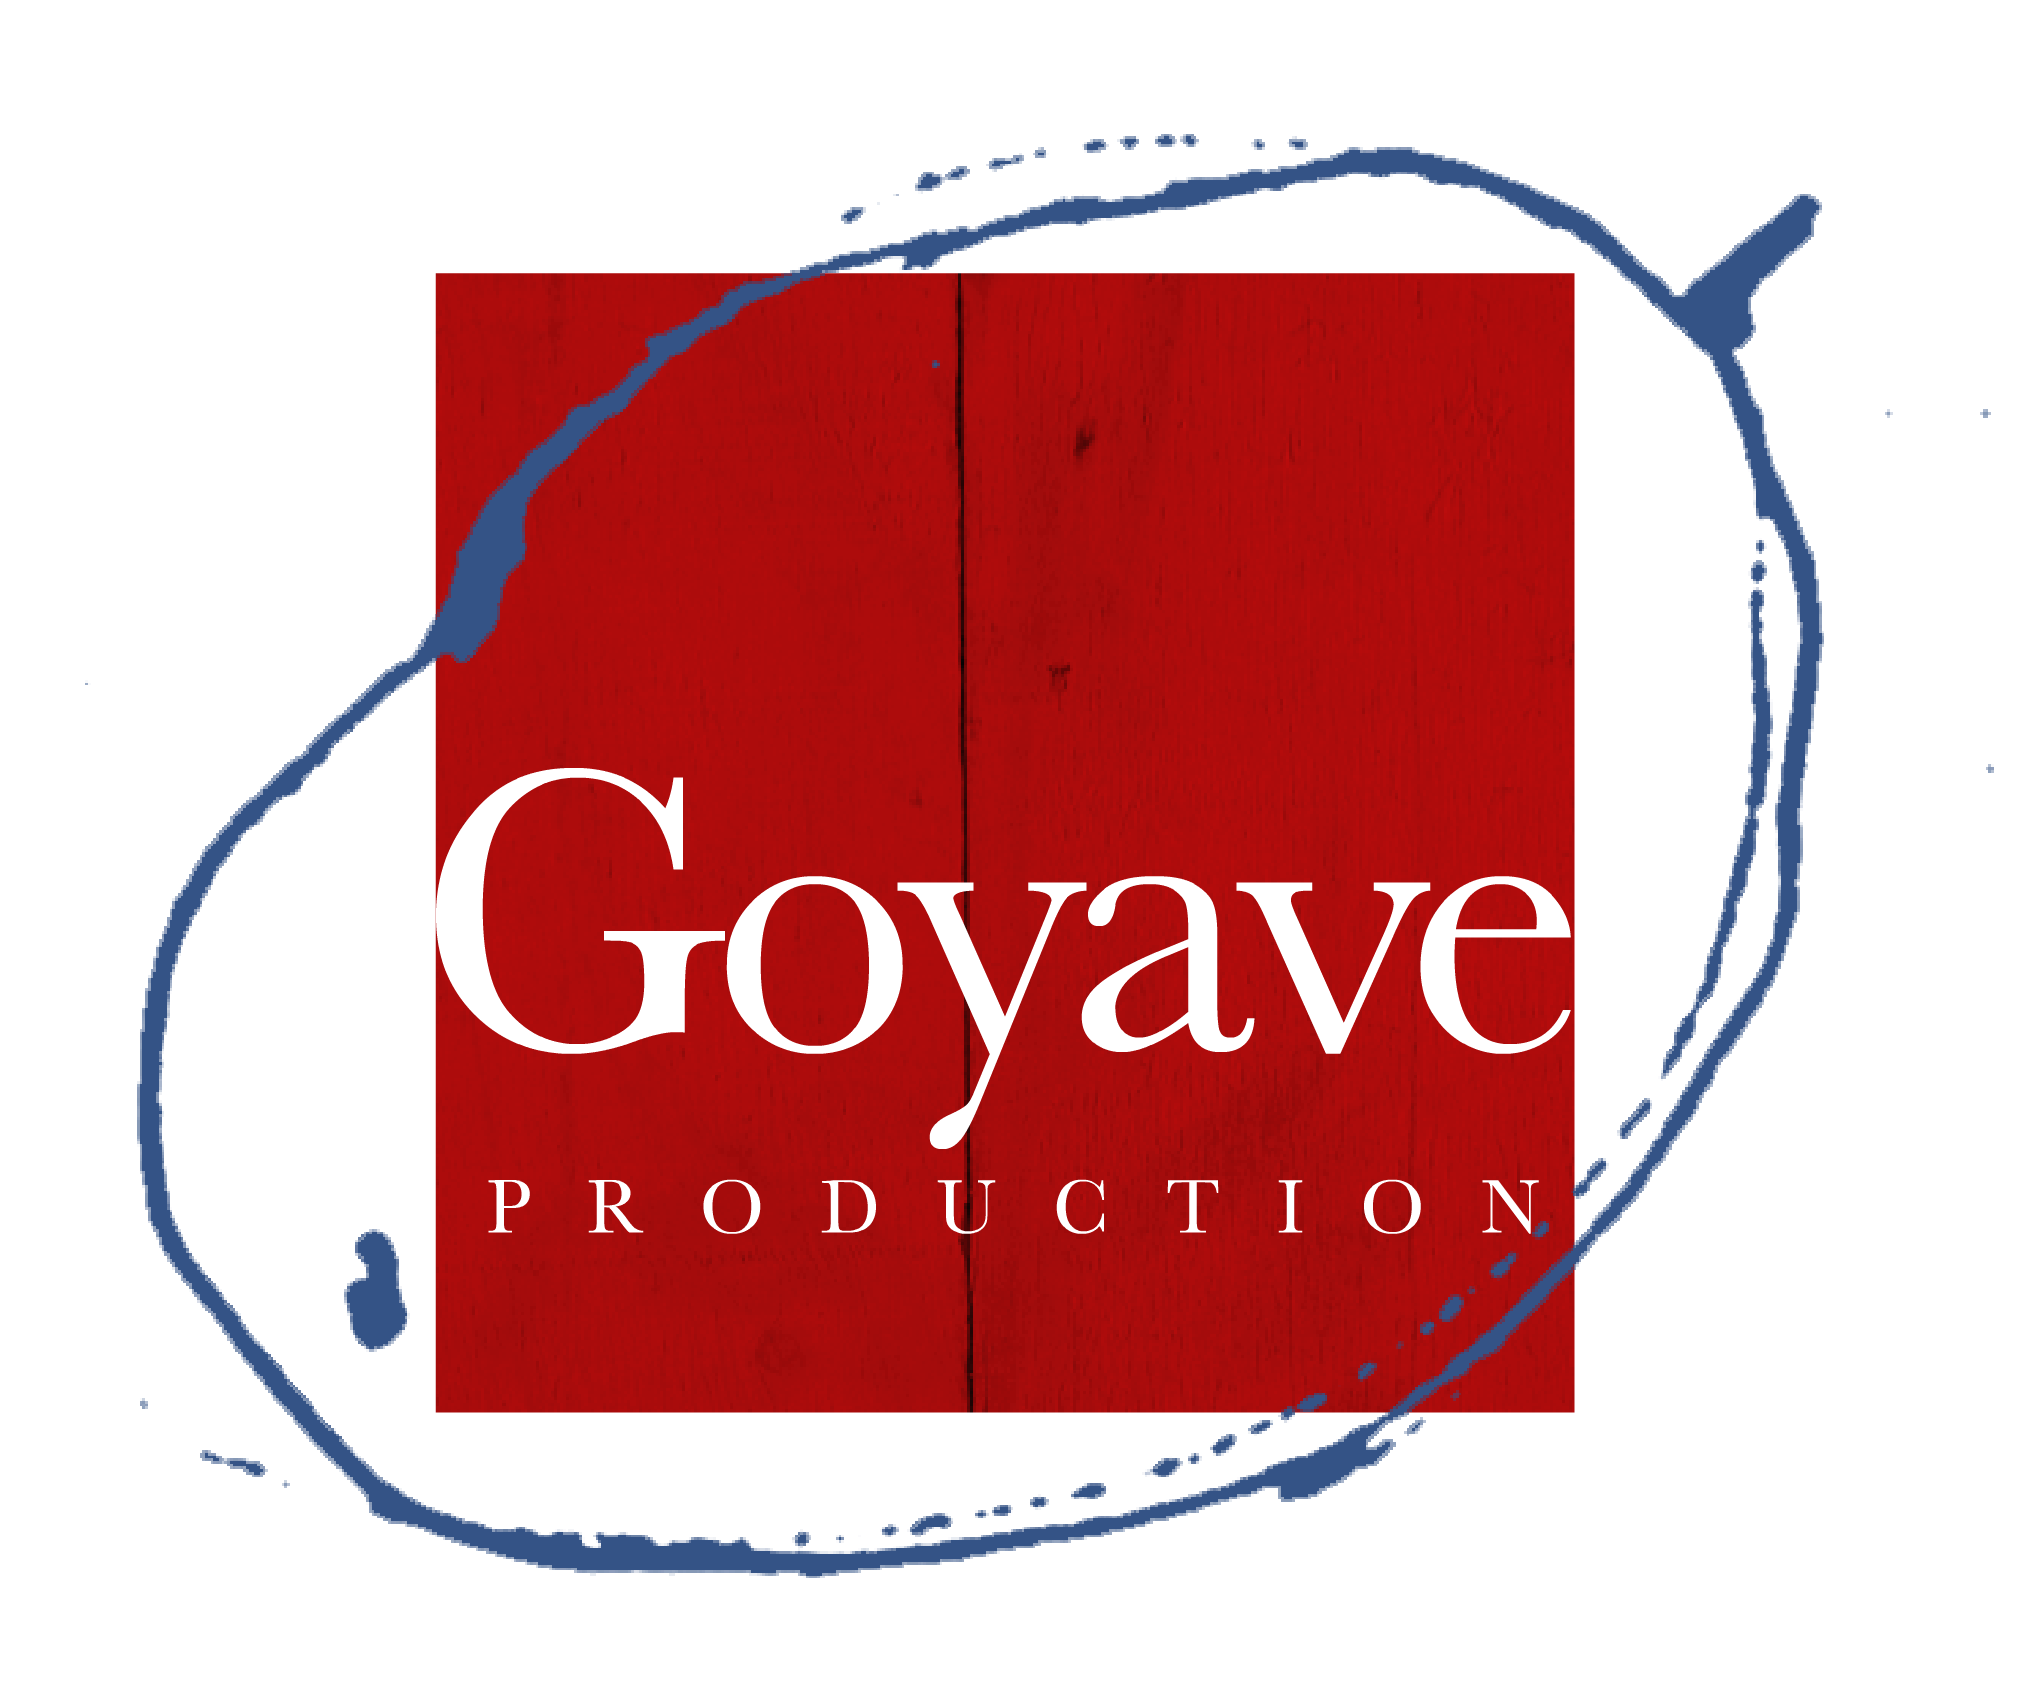 Goyave Production